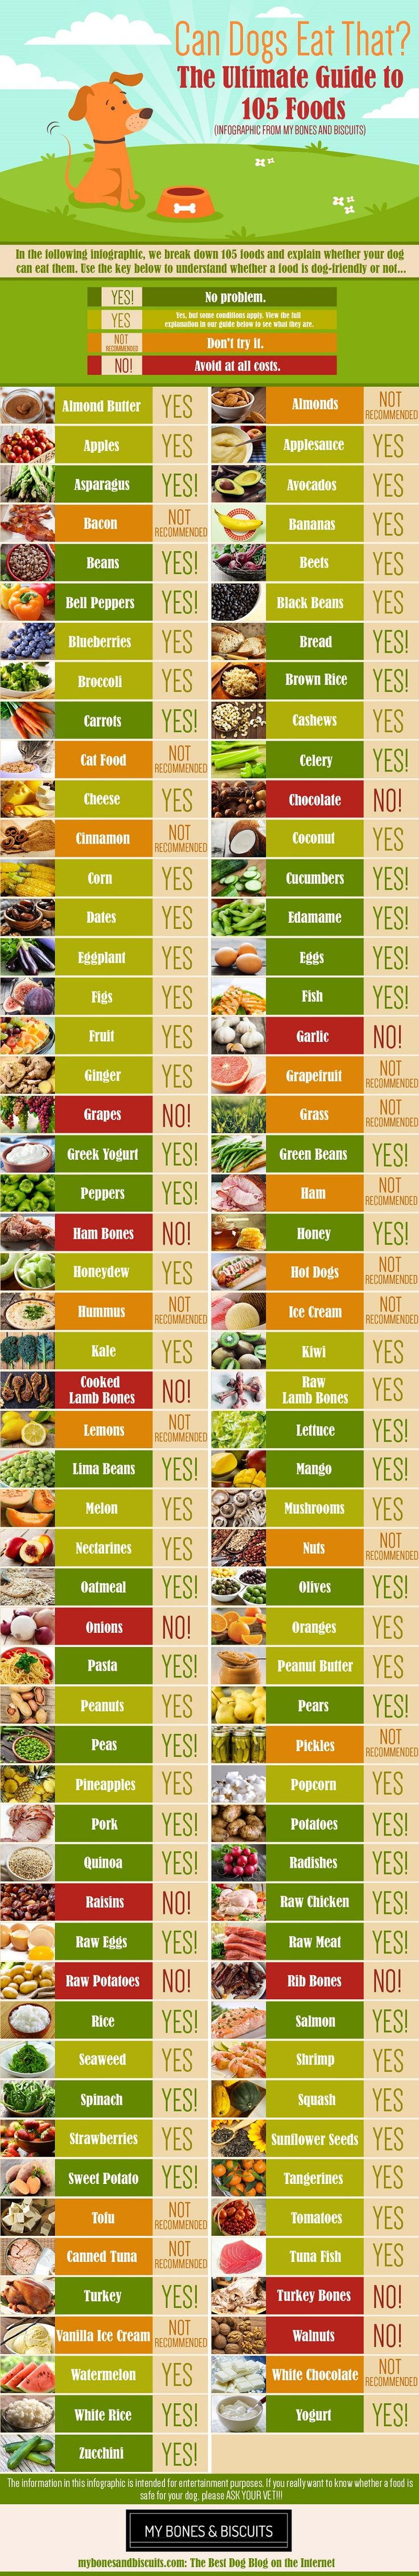 Can Dogs Eat This? EPIC Guide to 105 Foods | Apples Bananas Grapes Berries Watermelon | My Bones and Biscuits